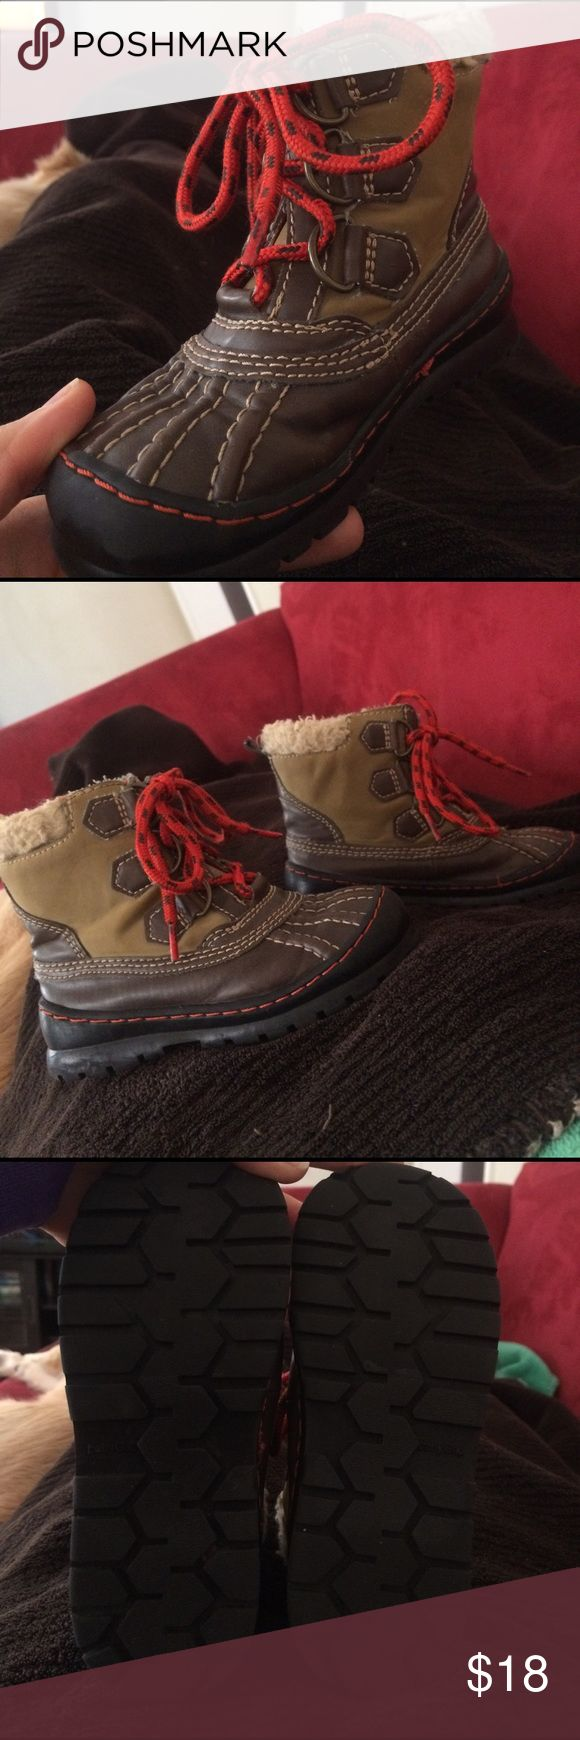 Baby gap duck winter snow boots suede, 9 Baby gap duck winter snow boots suede with orange laces toddler size 9, good clean condition. Please see photos. Smoke-free home. Shoes Rain & Snow Boots